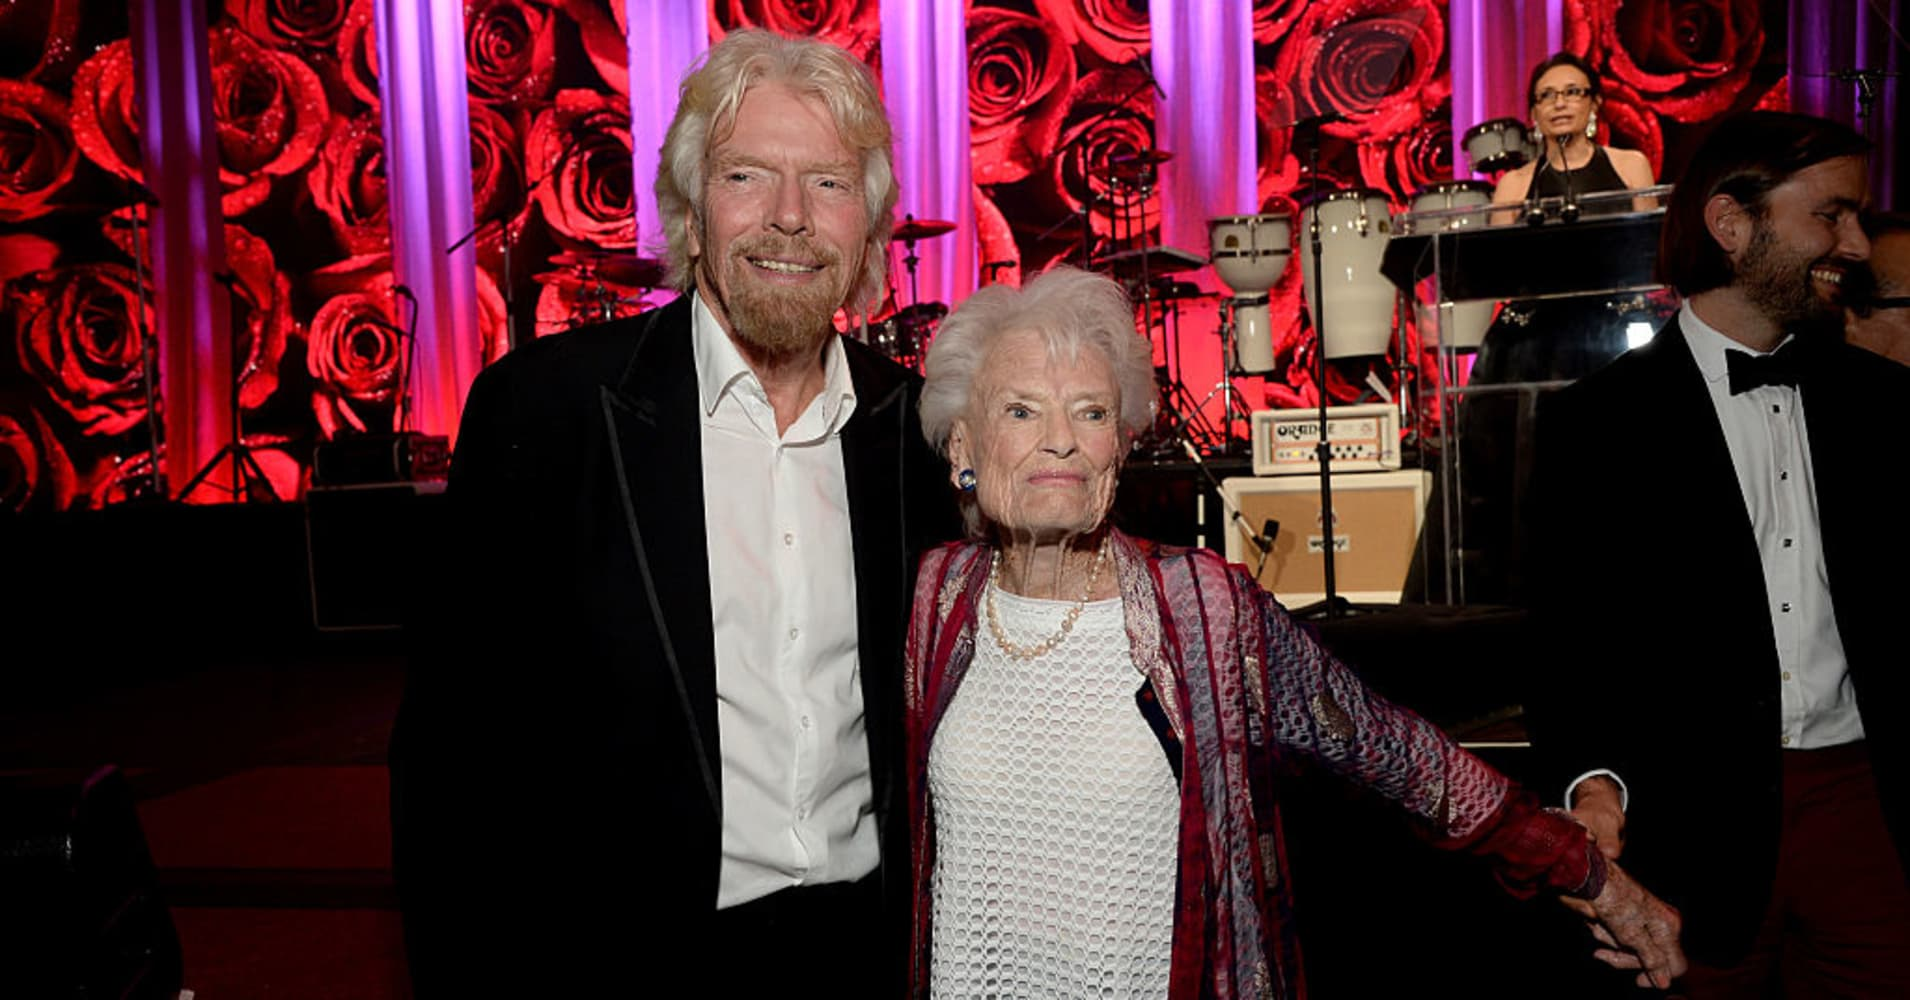 Richard Branson (L) and honoree Eve Branson attend the AltaMed Power Up, We Are The Future Gala at the Beverly Wilshire Four Seasons Hotel on May 12, 2016